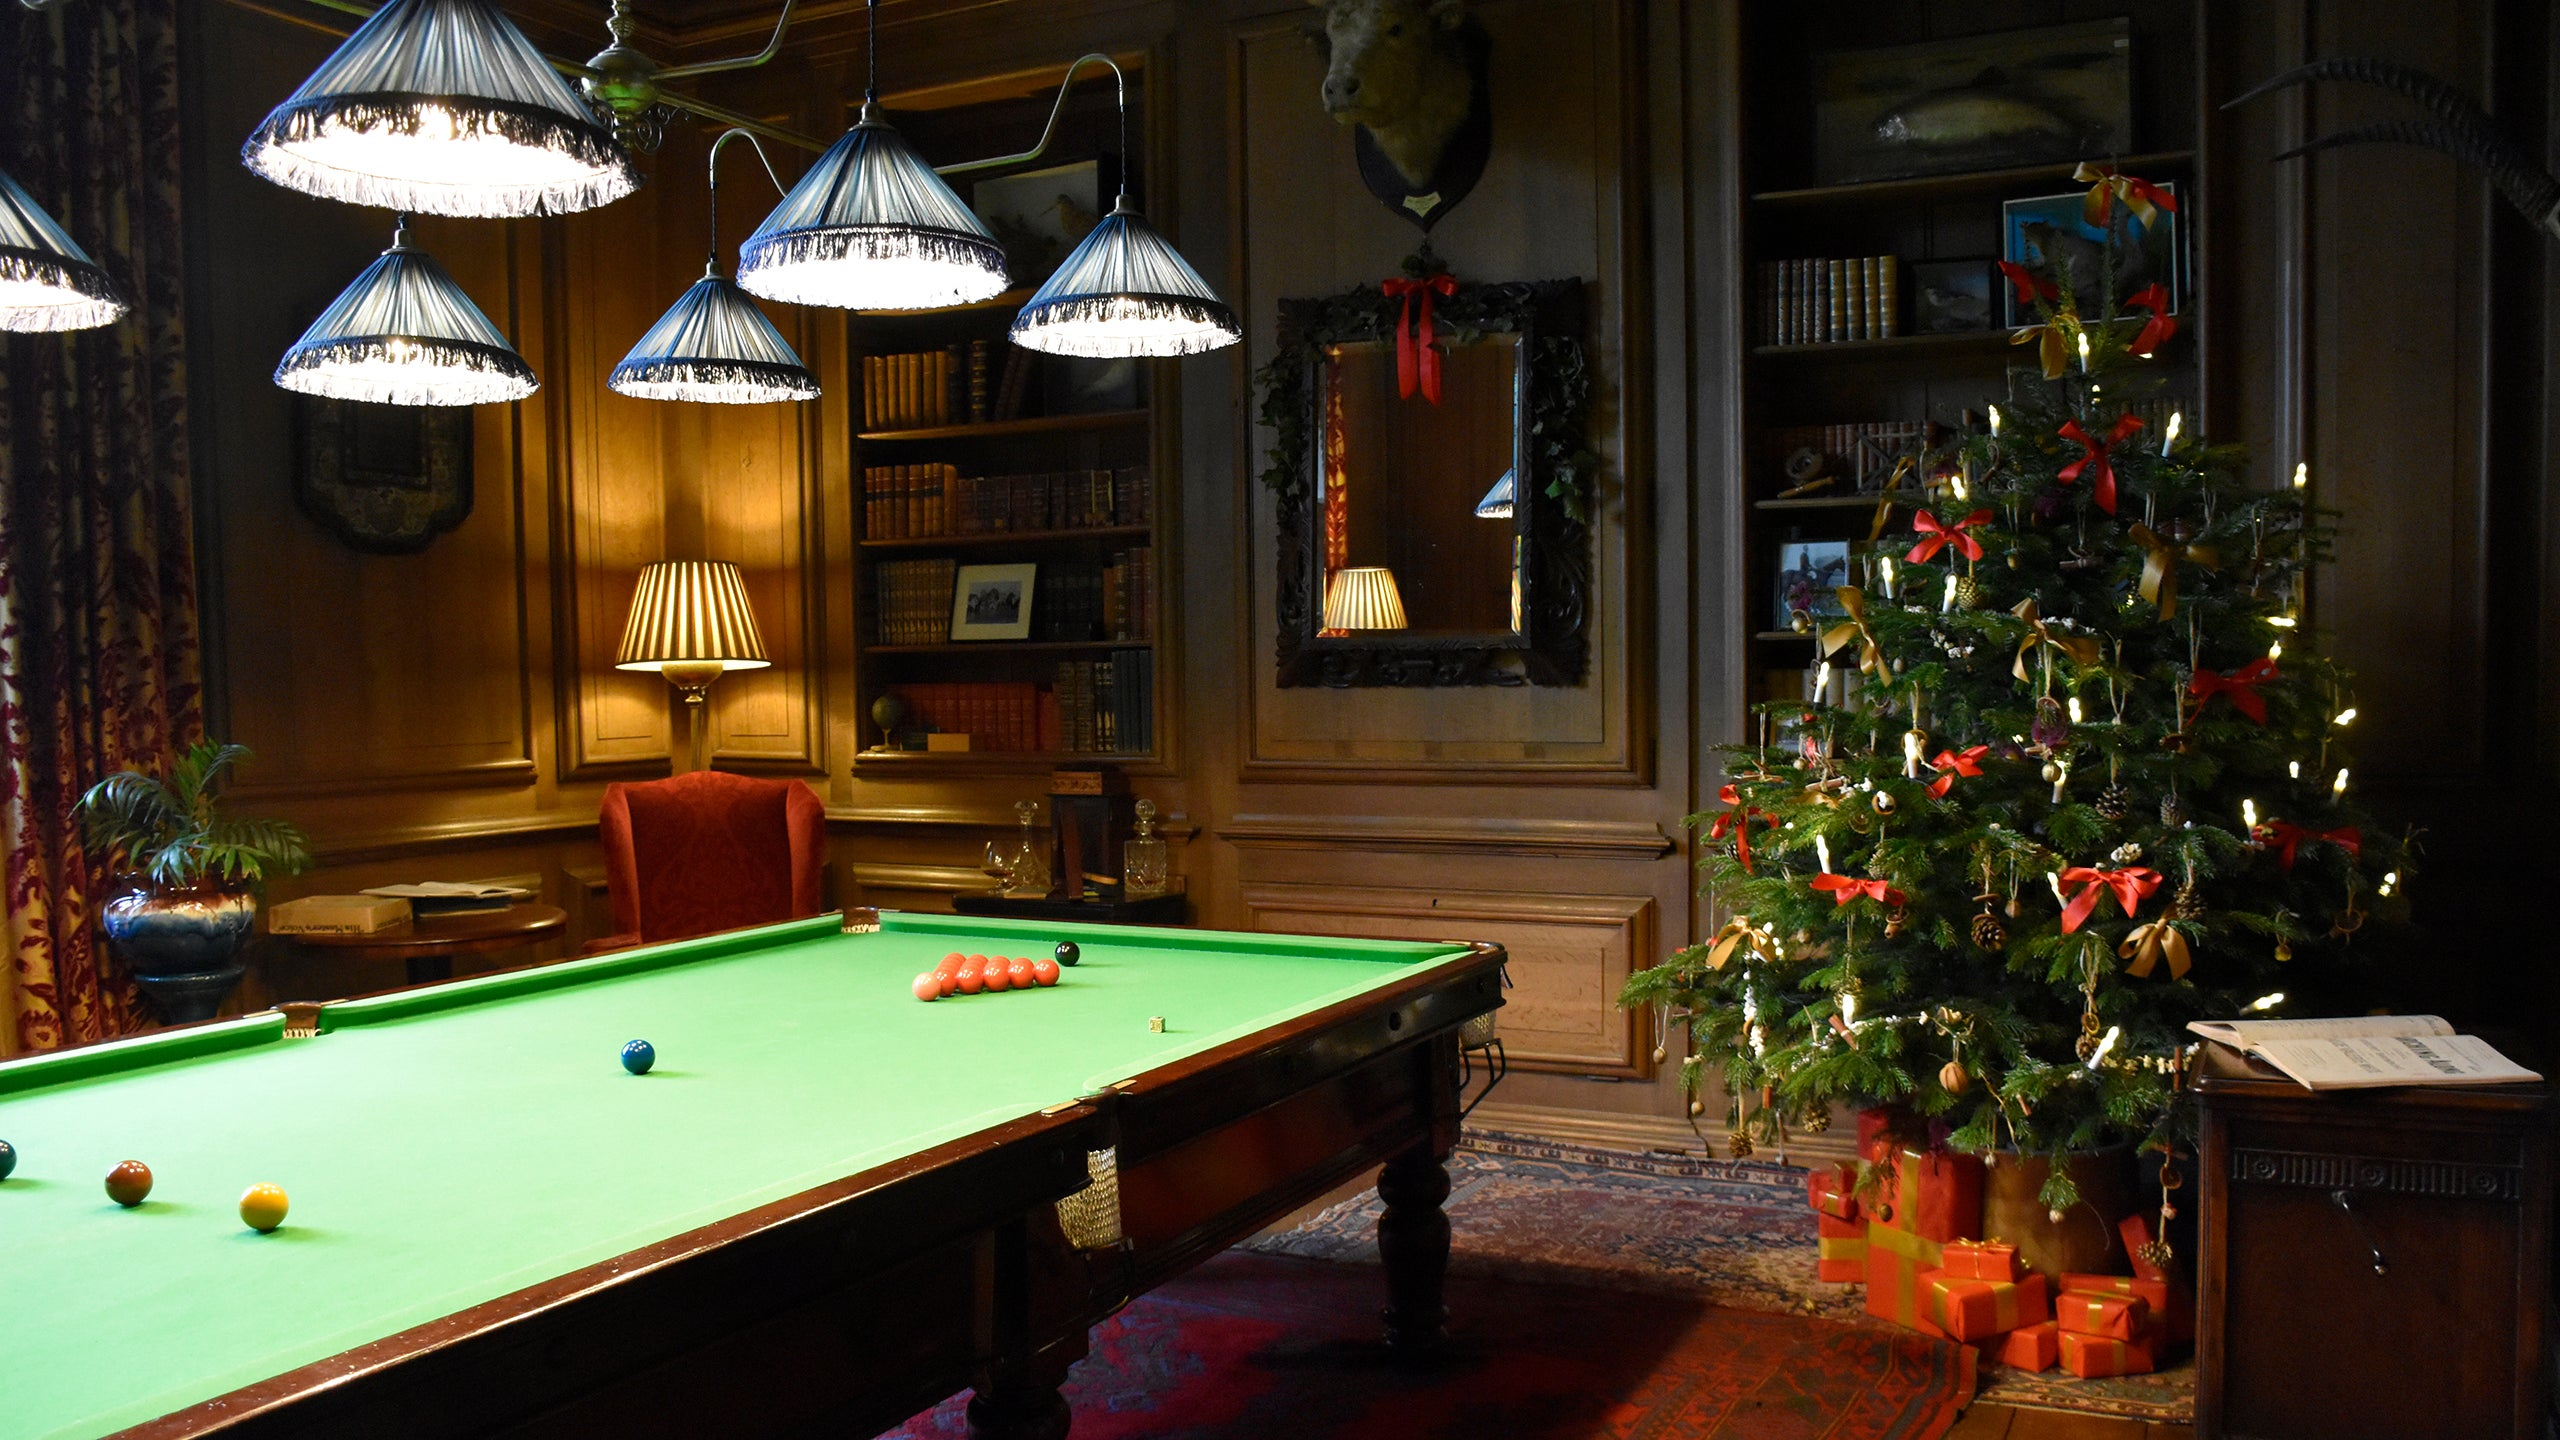 The billiard room dressed for Christmas at Avebury Manor, Wiltshire